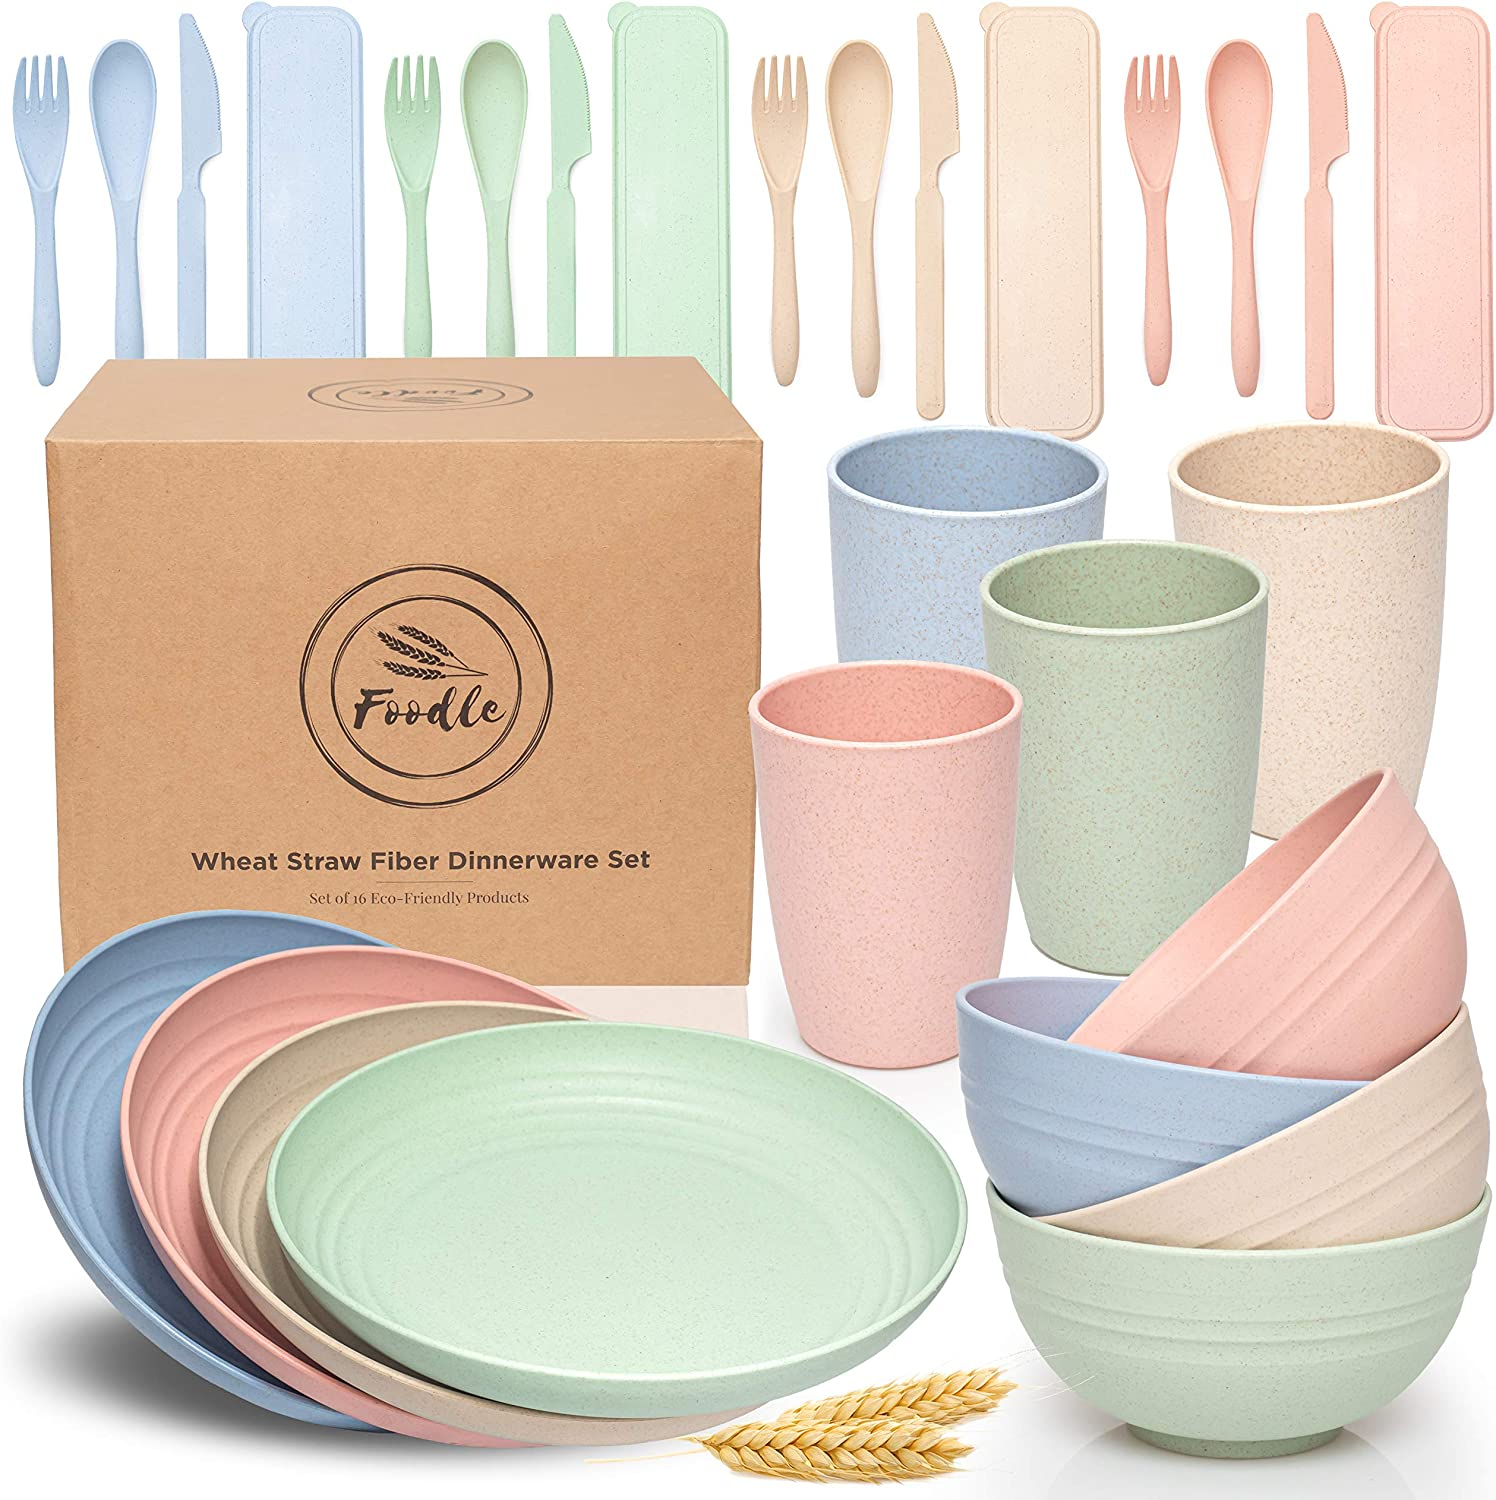 FOODLE Wheat Straw Dinnerware Sets - (28pcs) Lightweight & Unbreakable Dinnerware Set - Microwave and Dishwasher Safe - Eco friendly & Reusable Plates, Cups, Bowls and Cutlery - Great for Kids & Adult